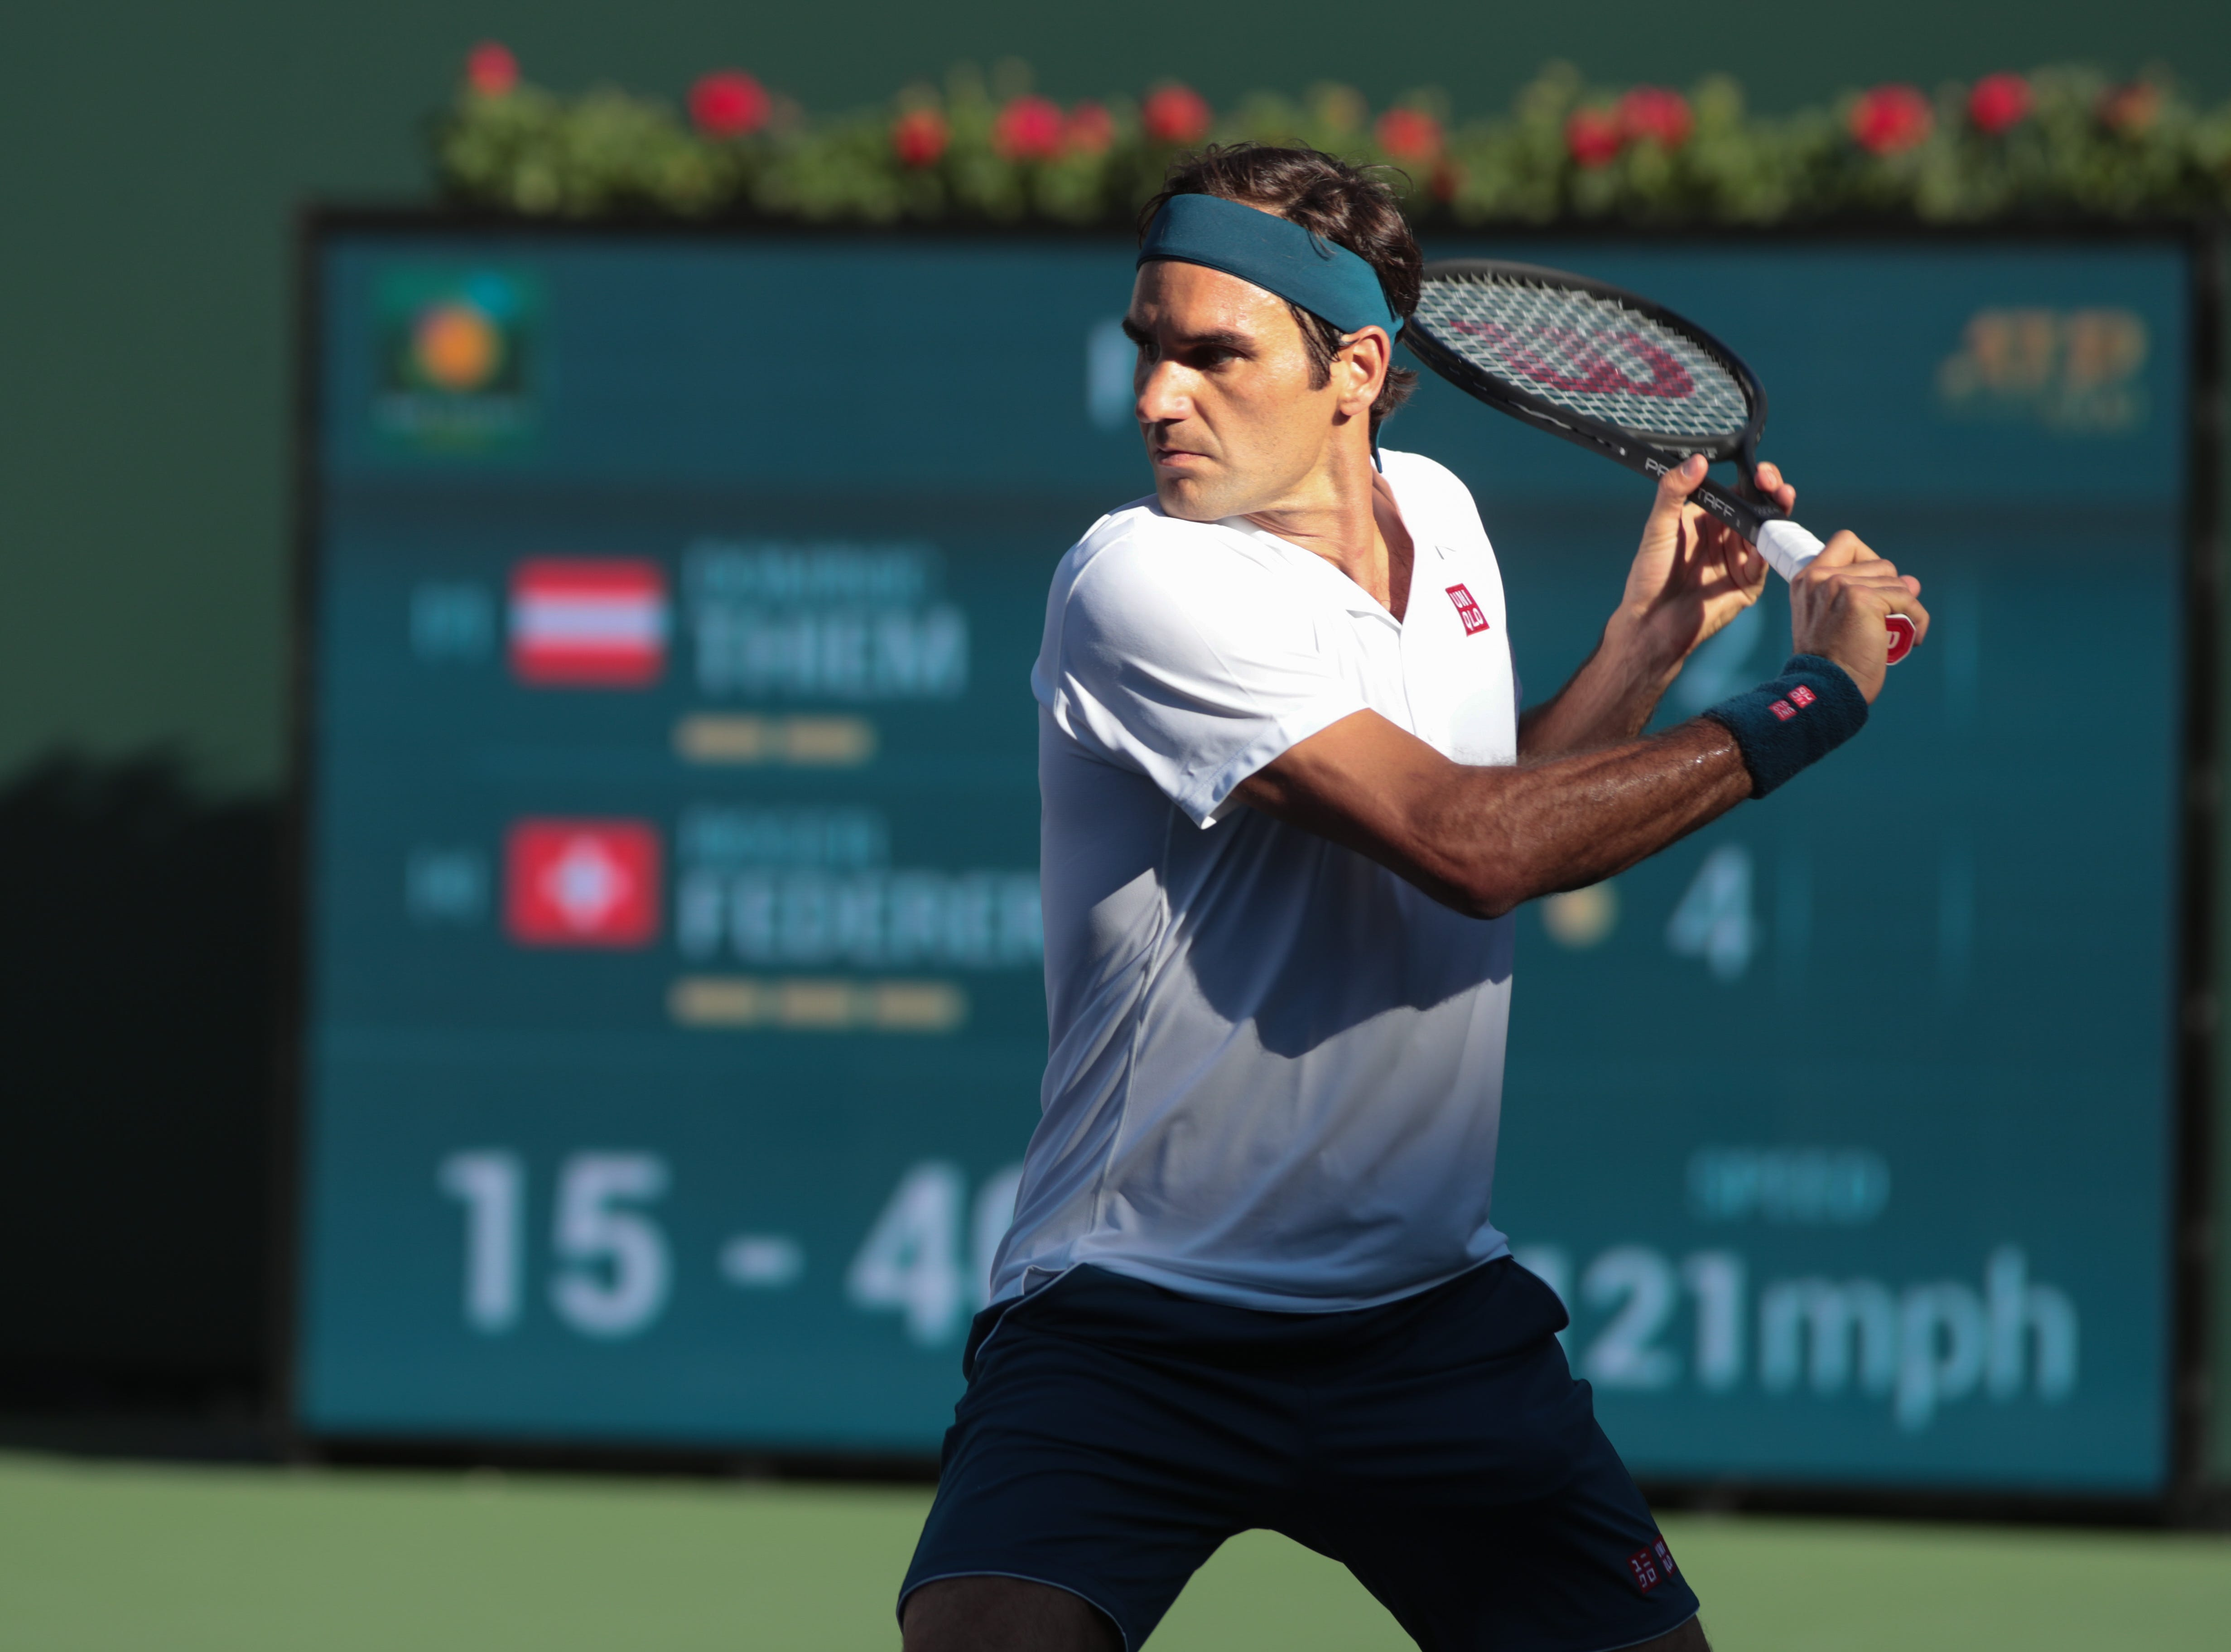 Roger Federer prepares to hit a backhand in the finals of the BNP Paribas Open in Indian Wells, Calif., March 17, 2019.